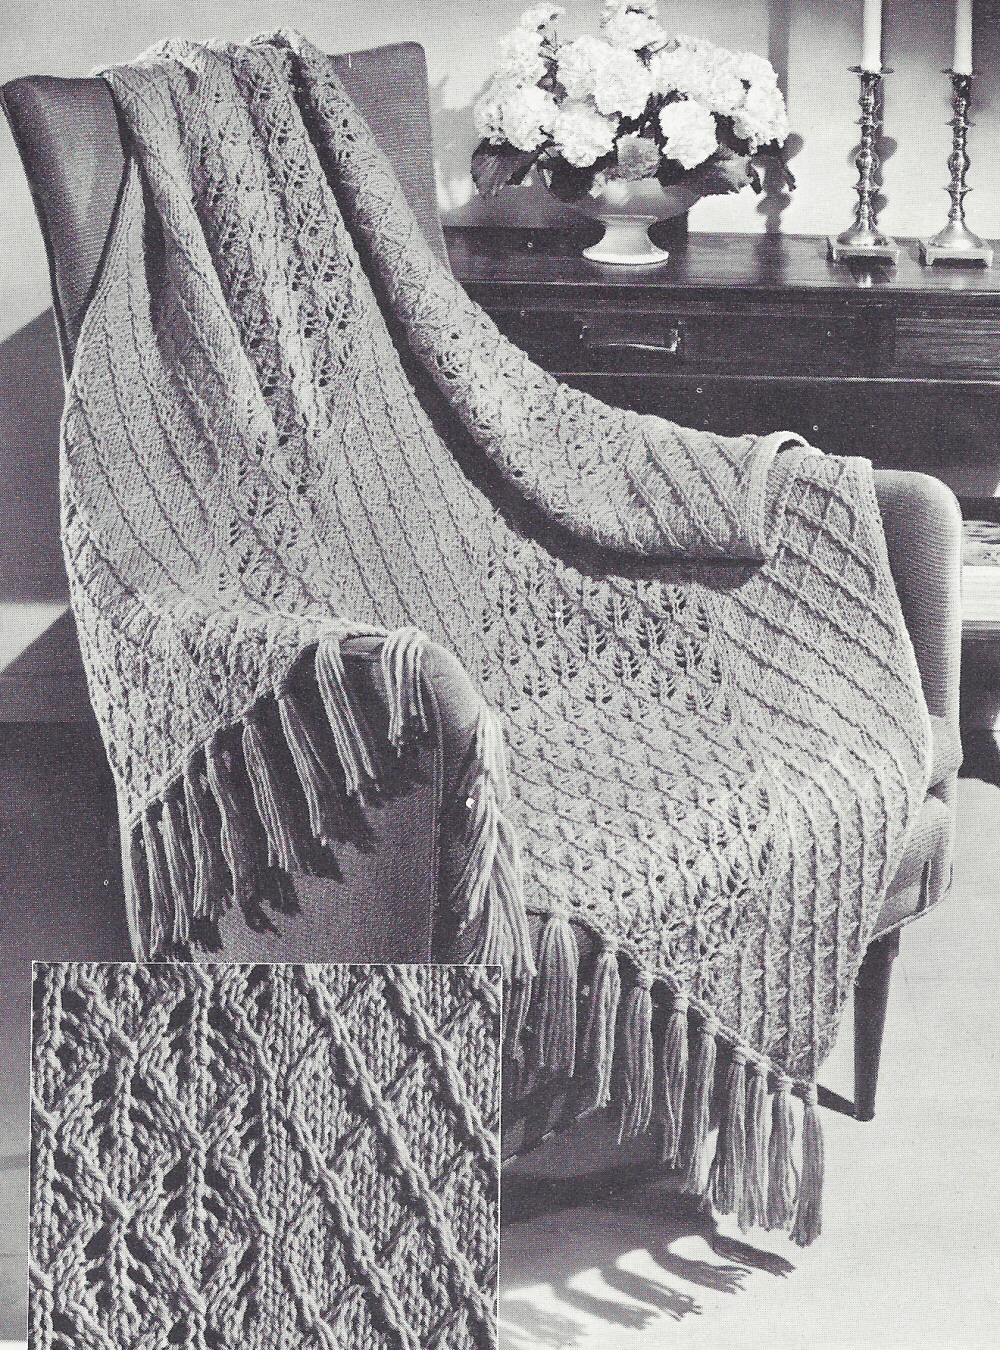 Vintage Knitting PATTERN to make Knitted Afghan/Throw ...